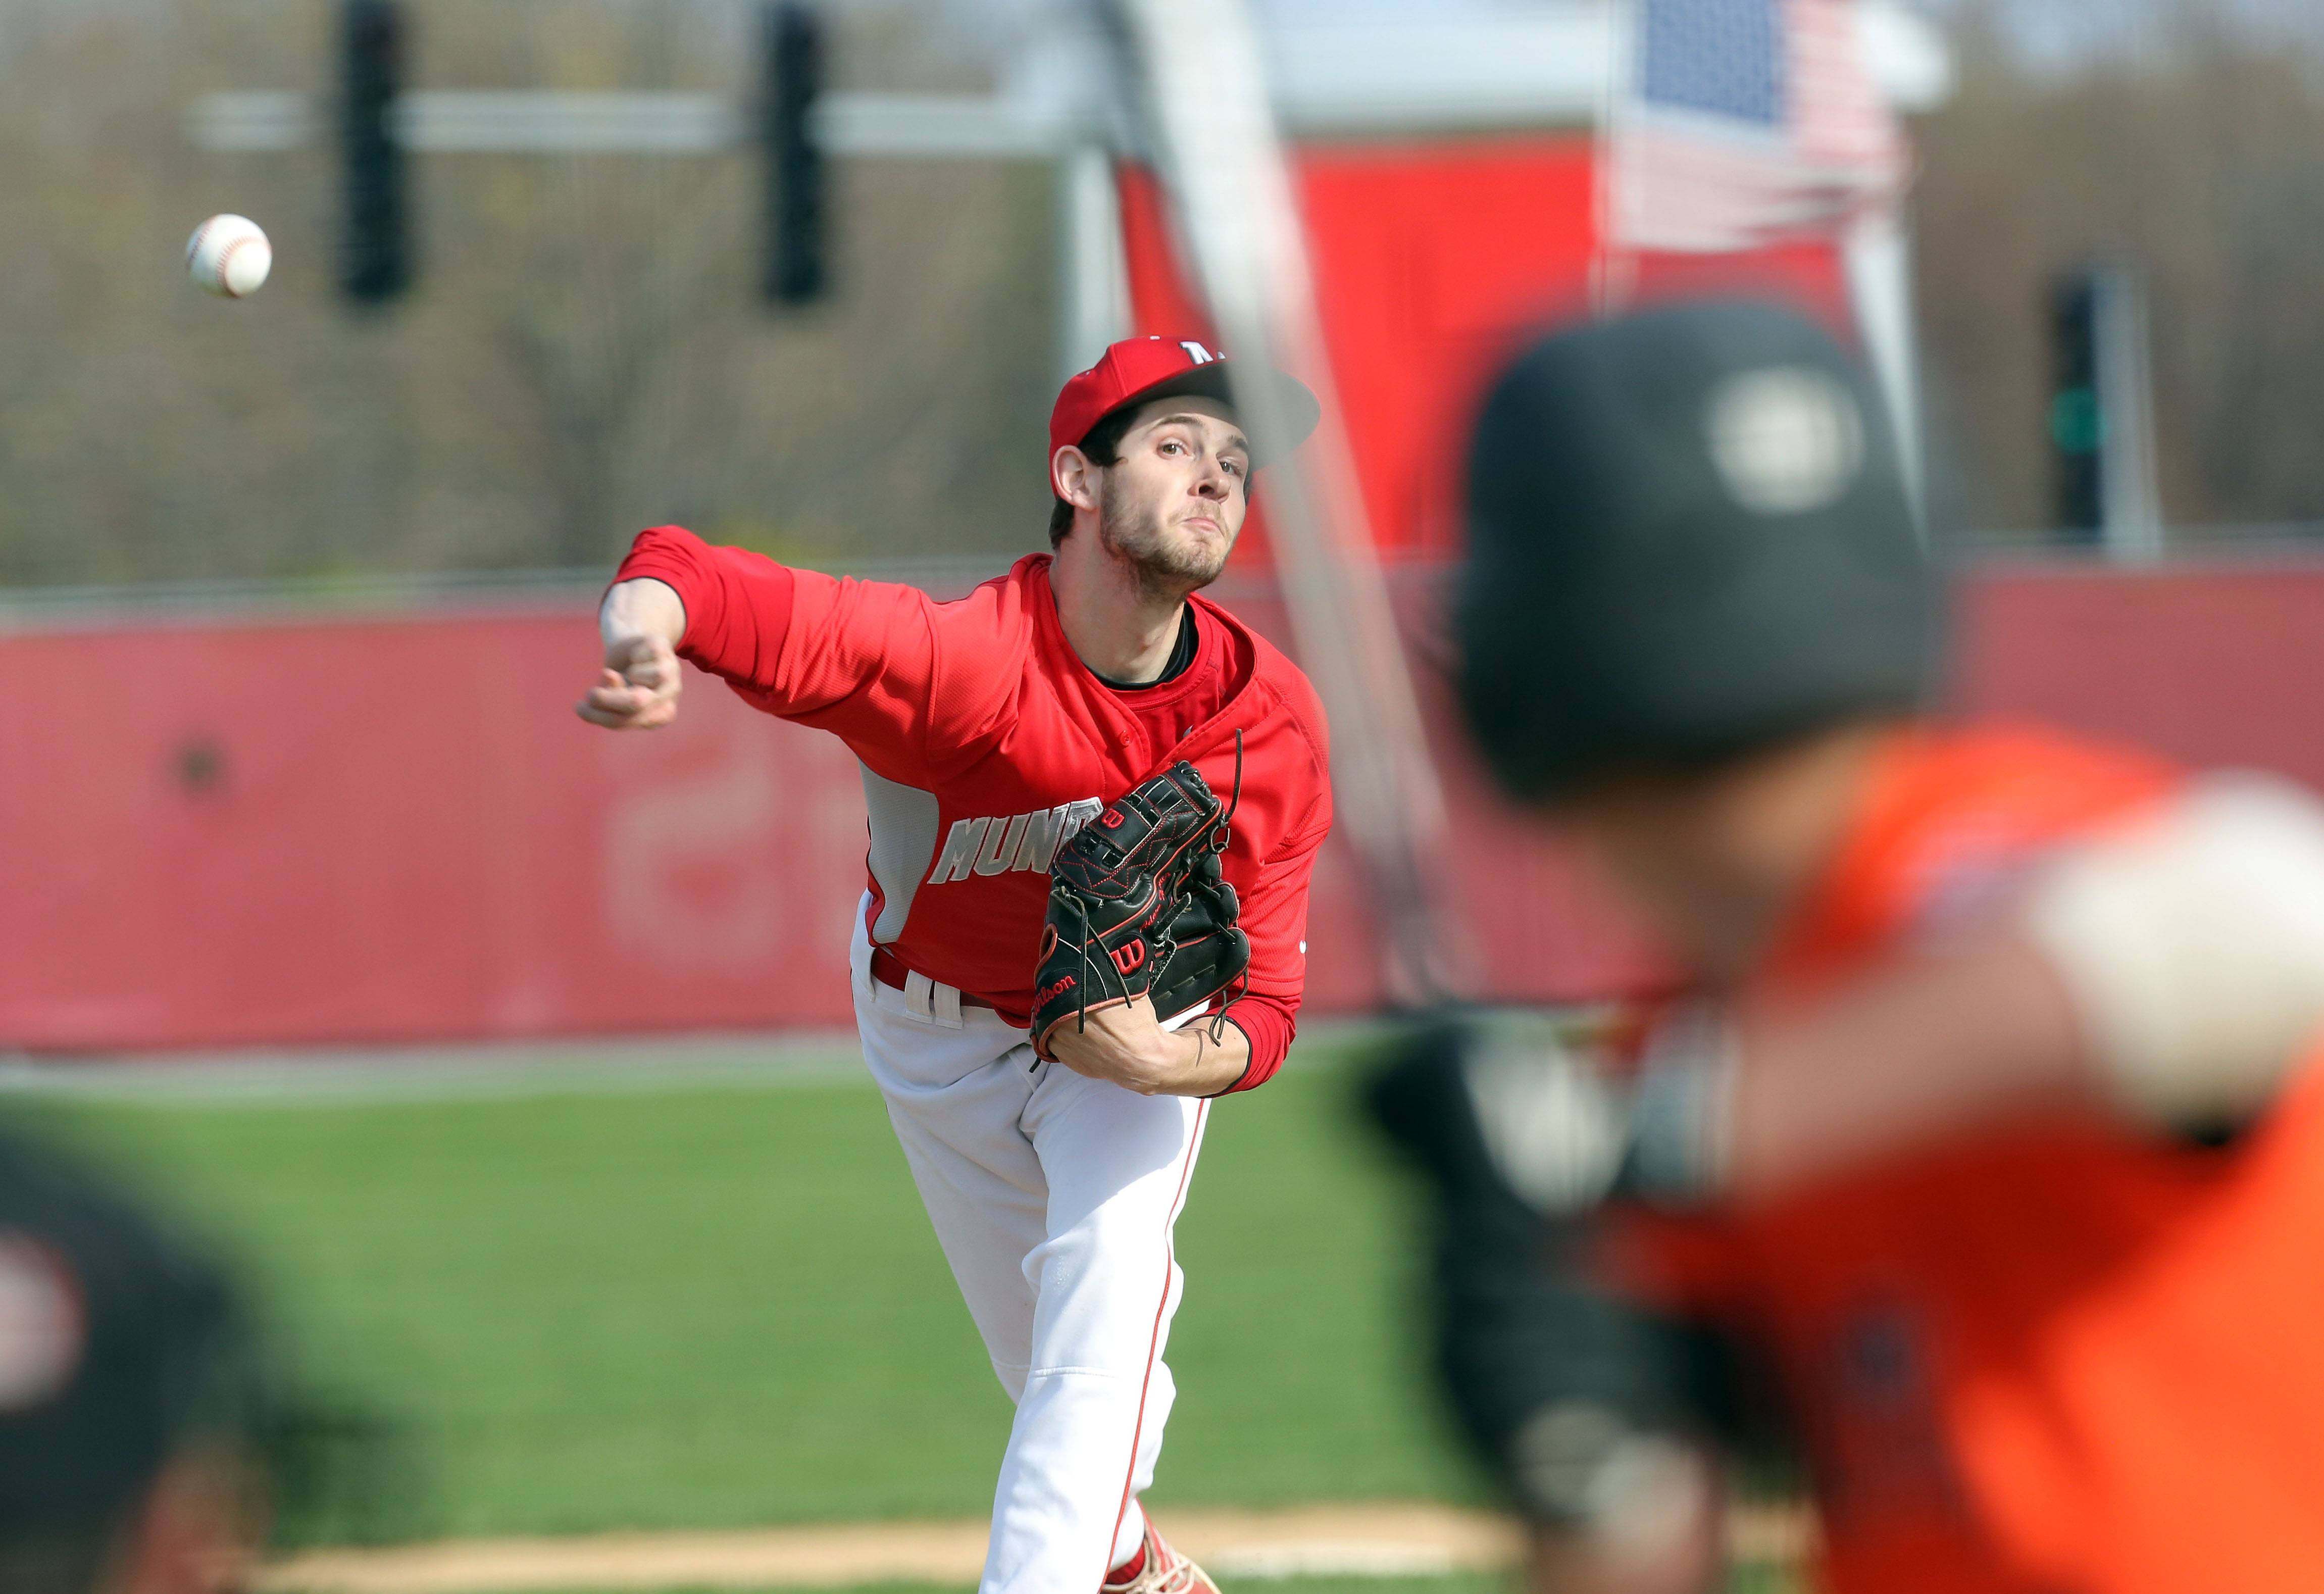 Mundelein's Adam Turner pitches during their game against Libertyville Tuesday at Mundelein High School.